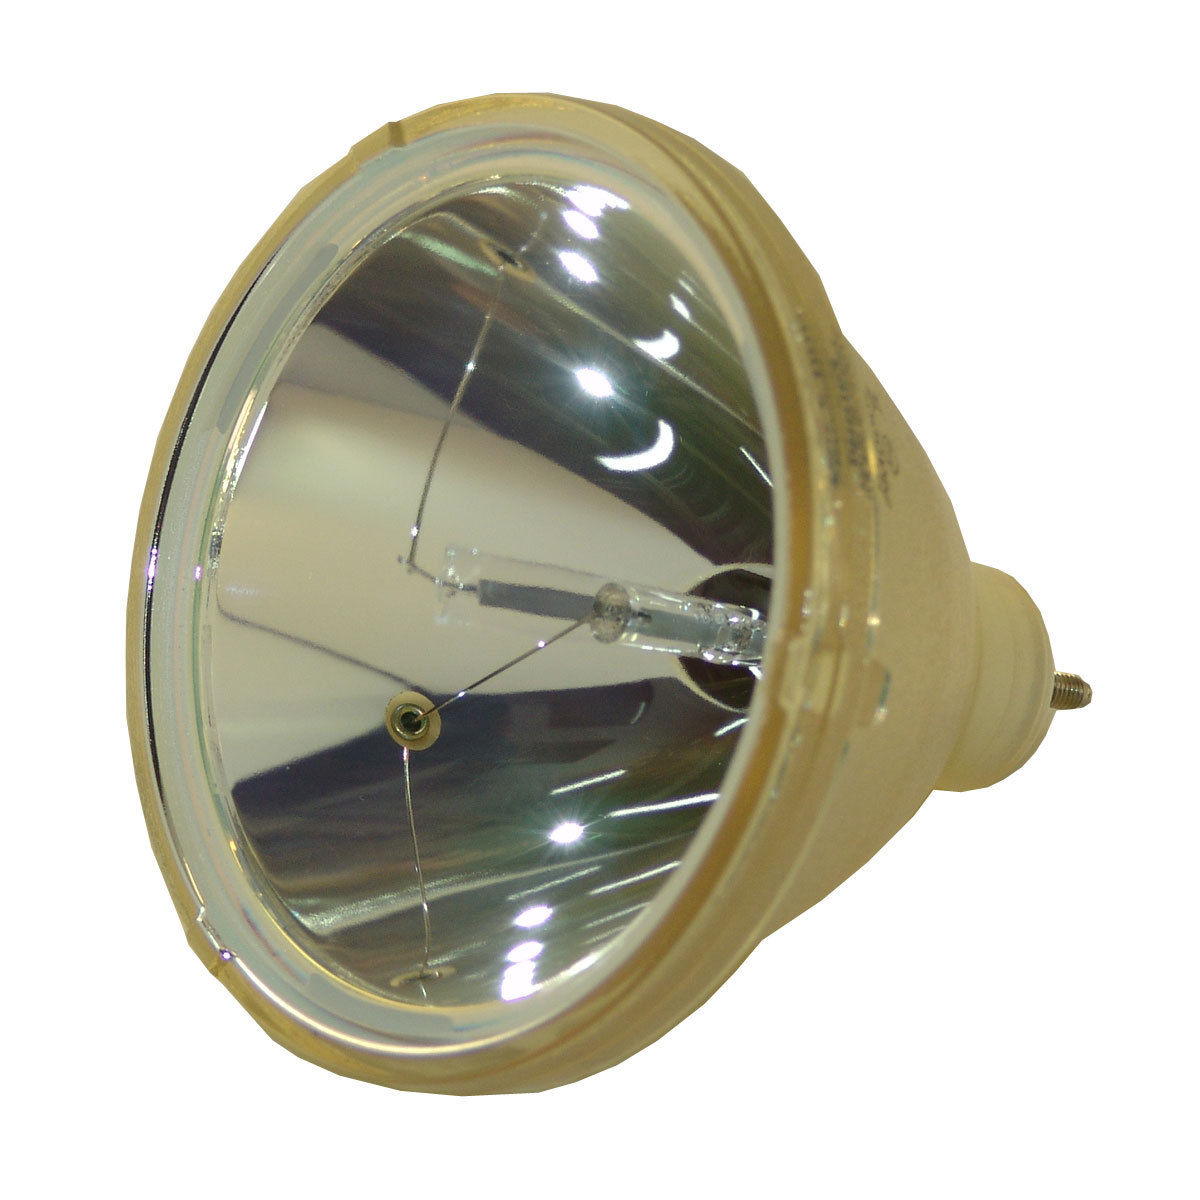 Compatible Bare Bulb LV-LP06 4642A001 for Canon LV-7525 LV-7525E LV-7535 LV-7535U Projector Lamp Bulb without housing compatible bare bulb lv lp29 2542b001aa for canon lv 7585 lv 7590 projector lamp bulb without housing